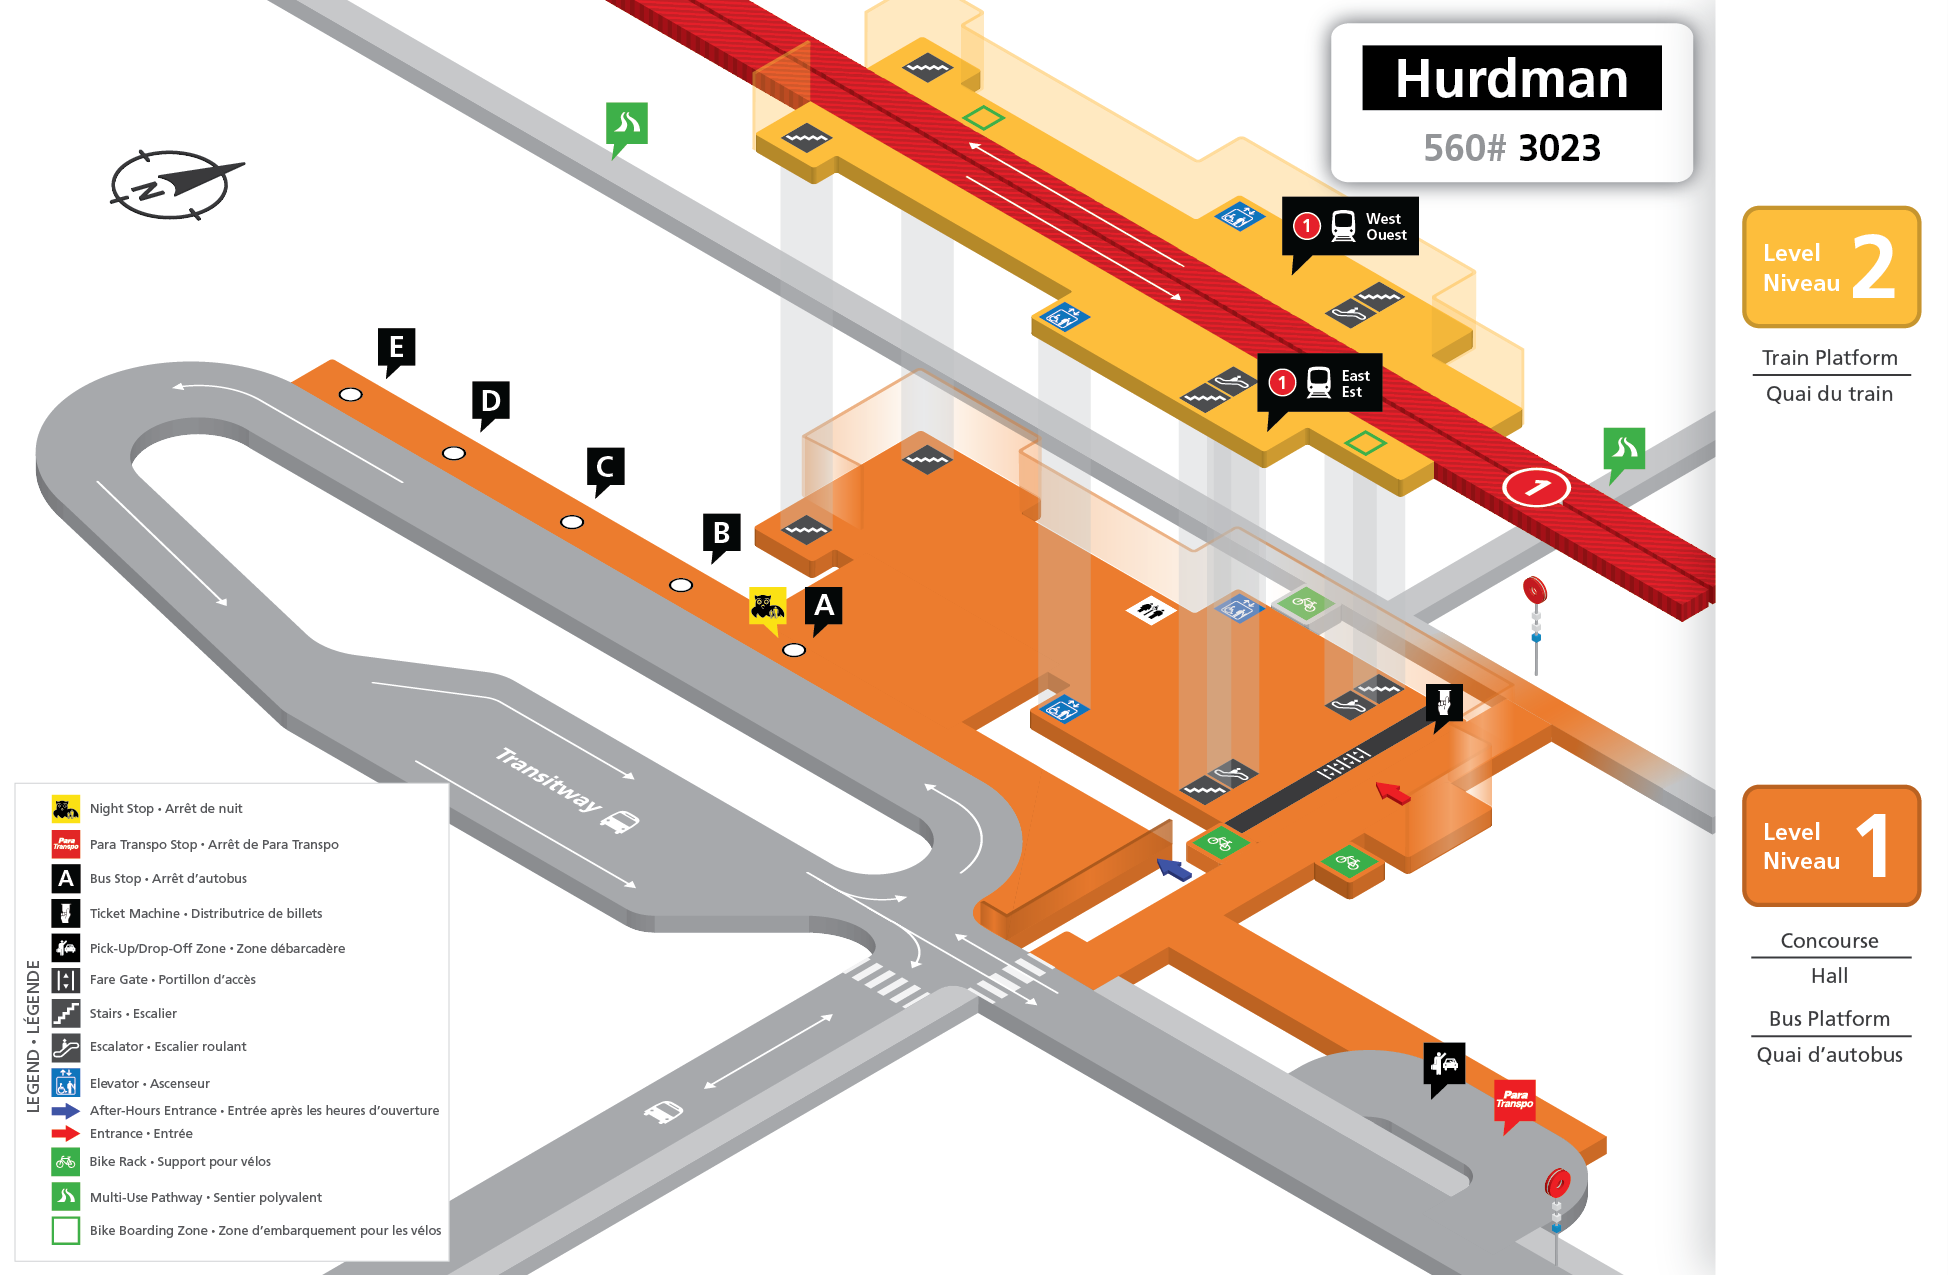 New Hurdman Station layout